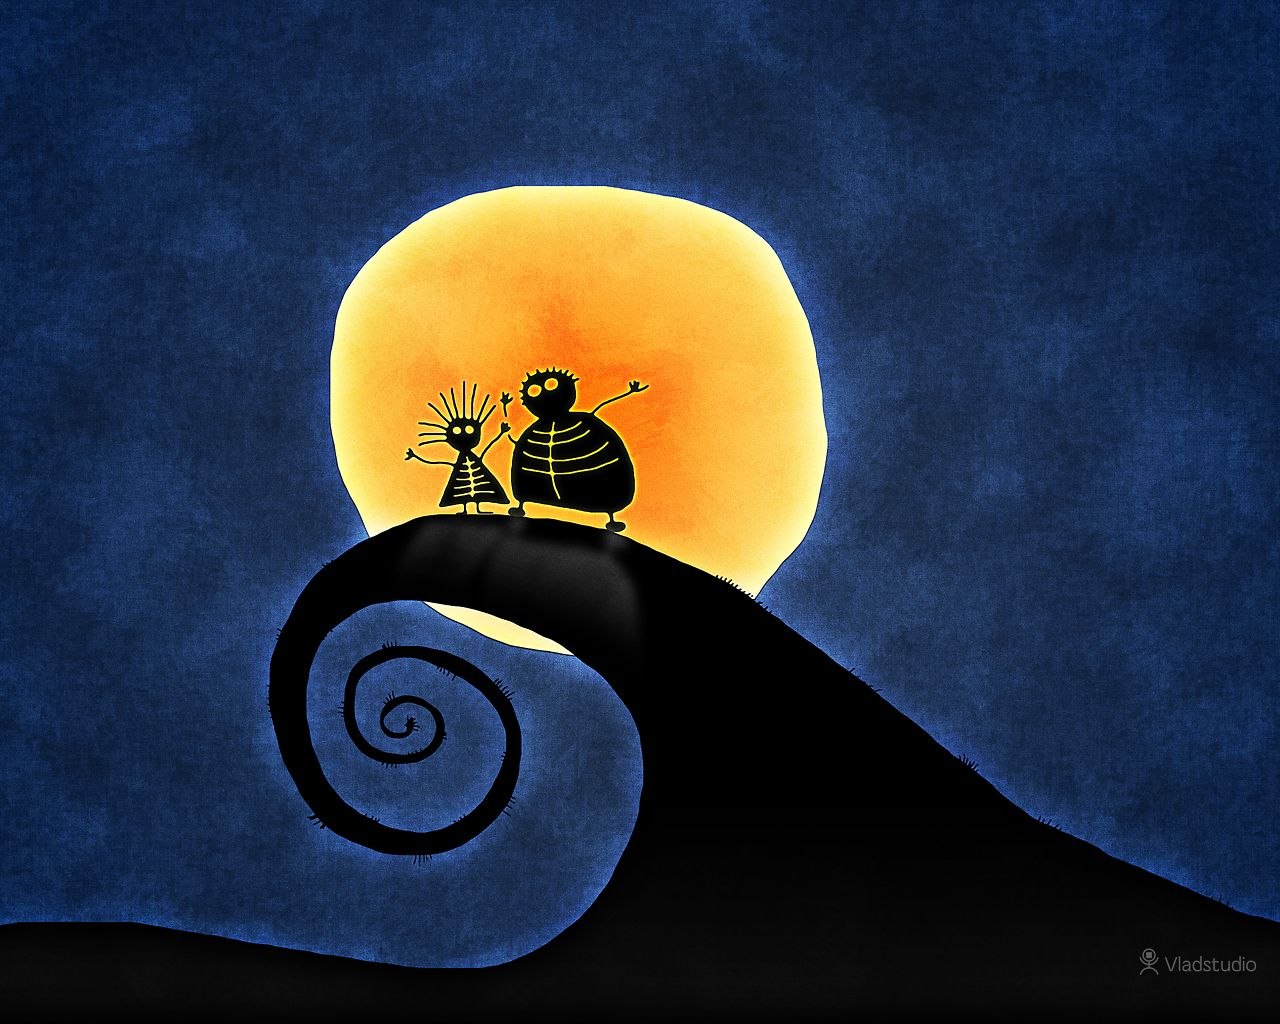 The Two and The Nightmare Before Christmas